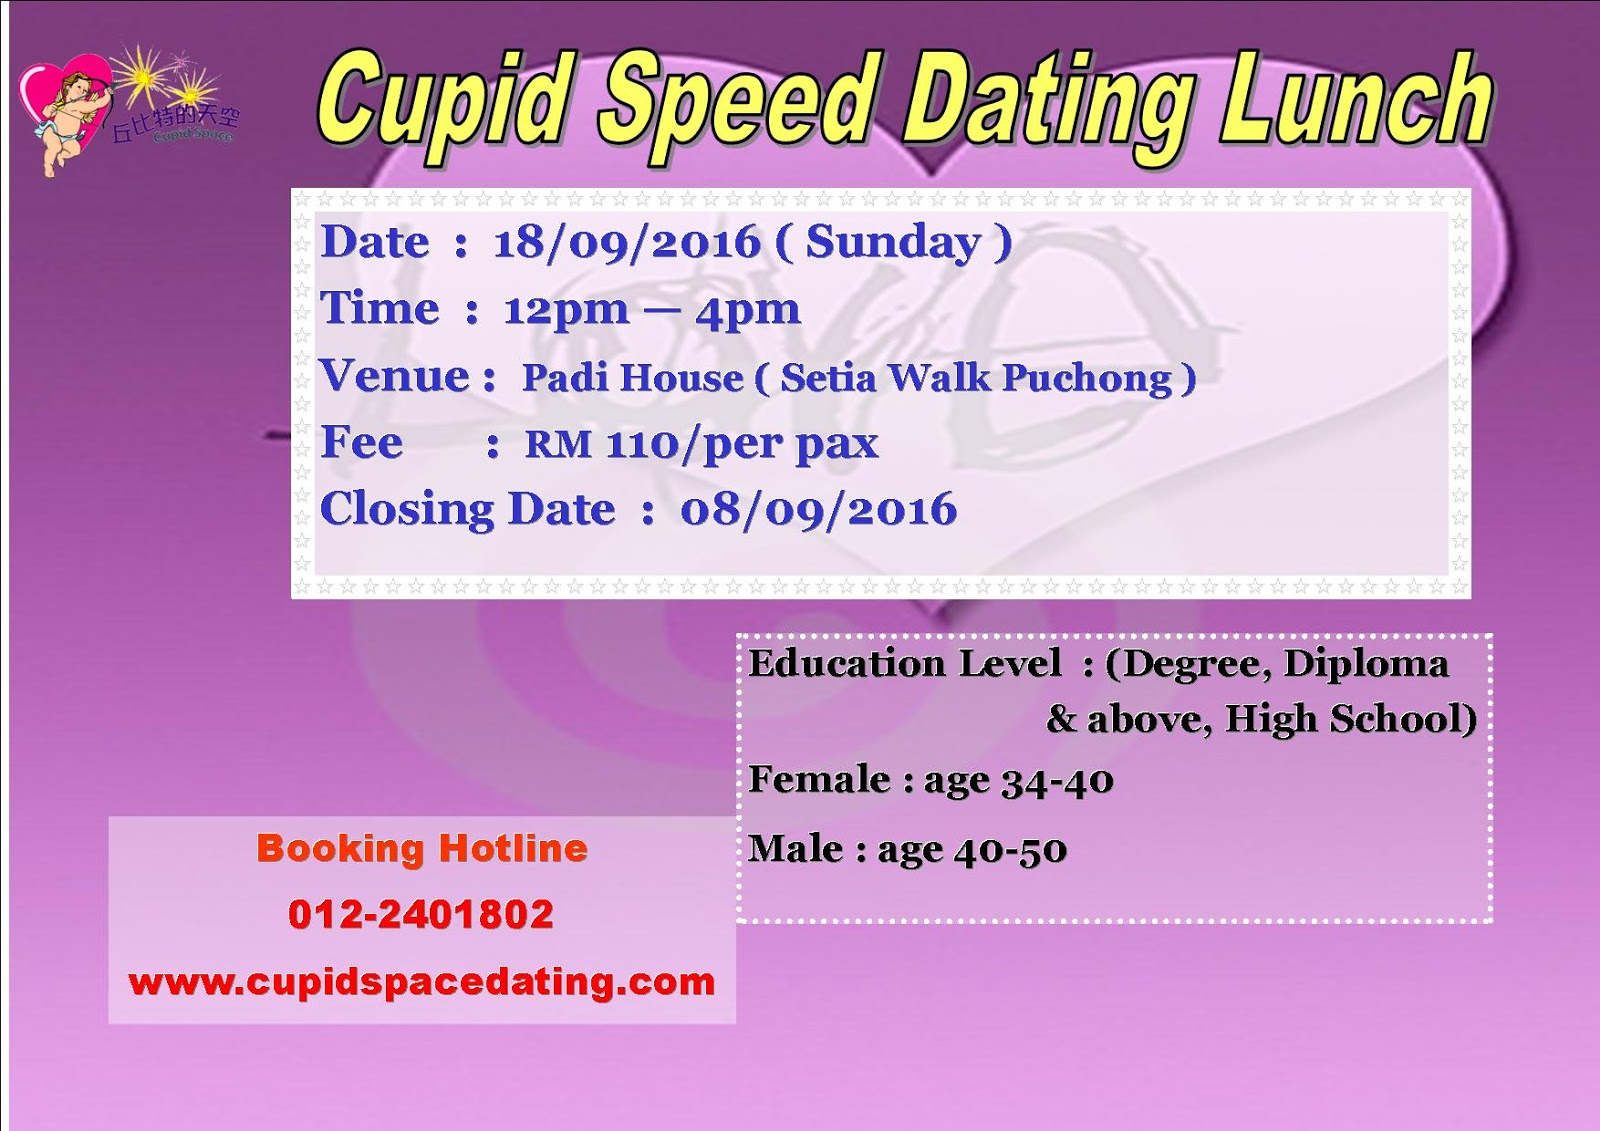 cupid space speed dating A speed dating host shares what you can expect at a speed dating event find this pin and more on the look of love by jessica druck i don't know about you, but i've always had this idea that speed dating events are either held in a high school cafeteria at night or.